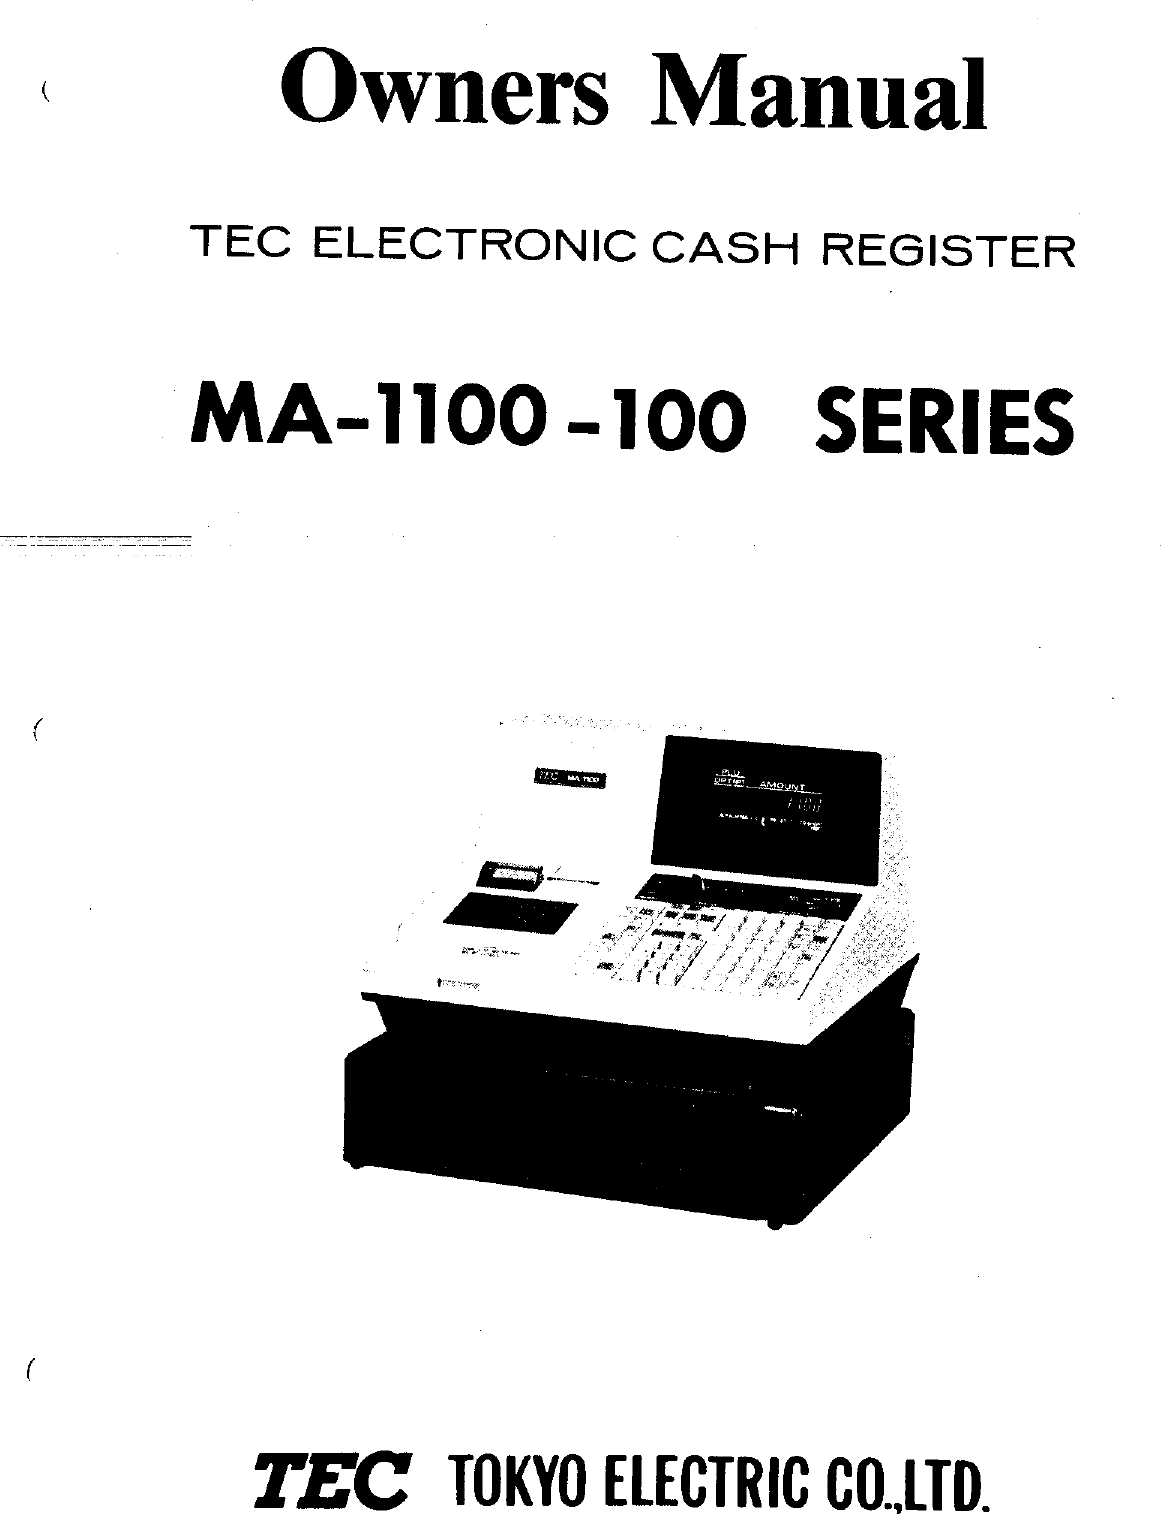 Toshiba Tec Ma 1100 100 Series Owners Manual Owner's (E1